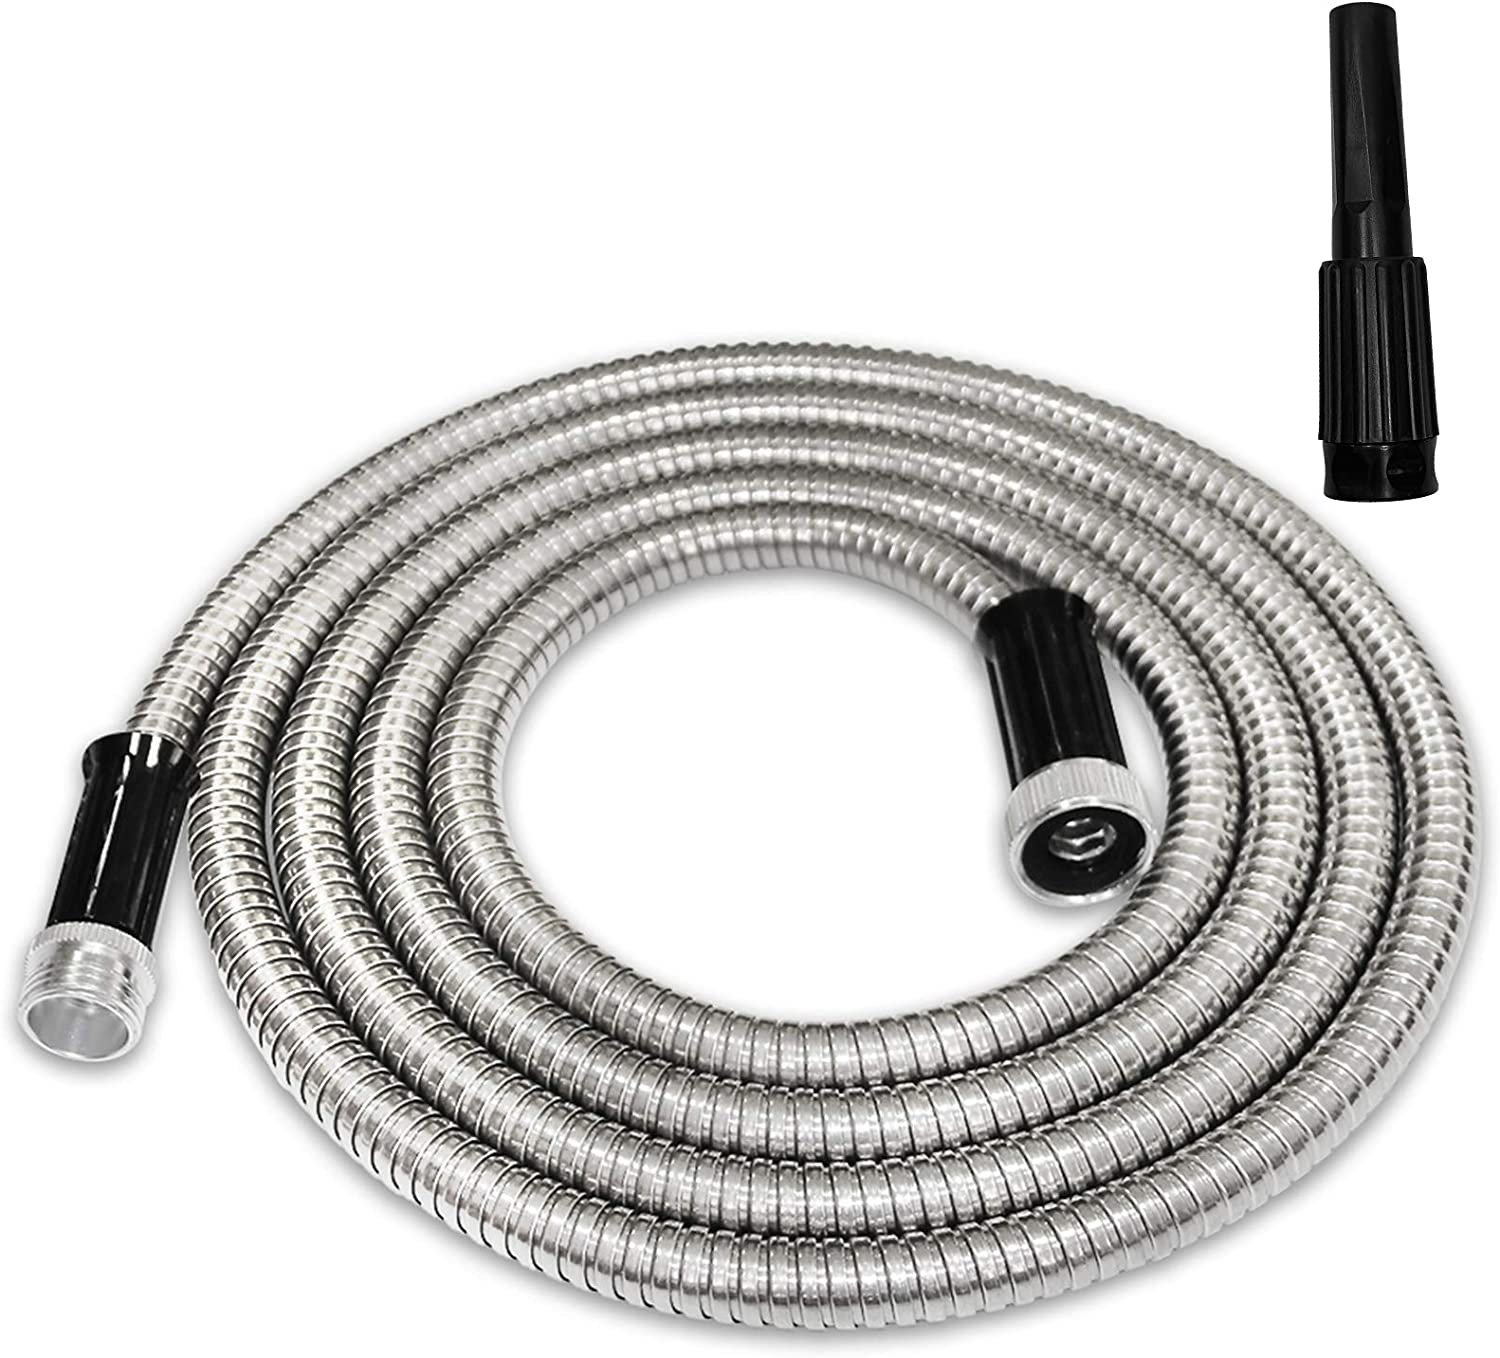 TUNHUI 10FT Heavy Duty Metal Garden Hose Stainless Steel Water Hose with Adjustable Nozzle Metal Hose Durable Kink Free and Easy to Store Outdoor Hose